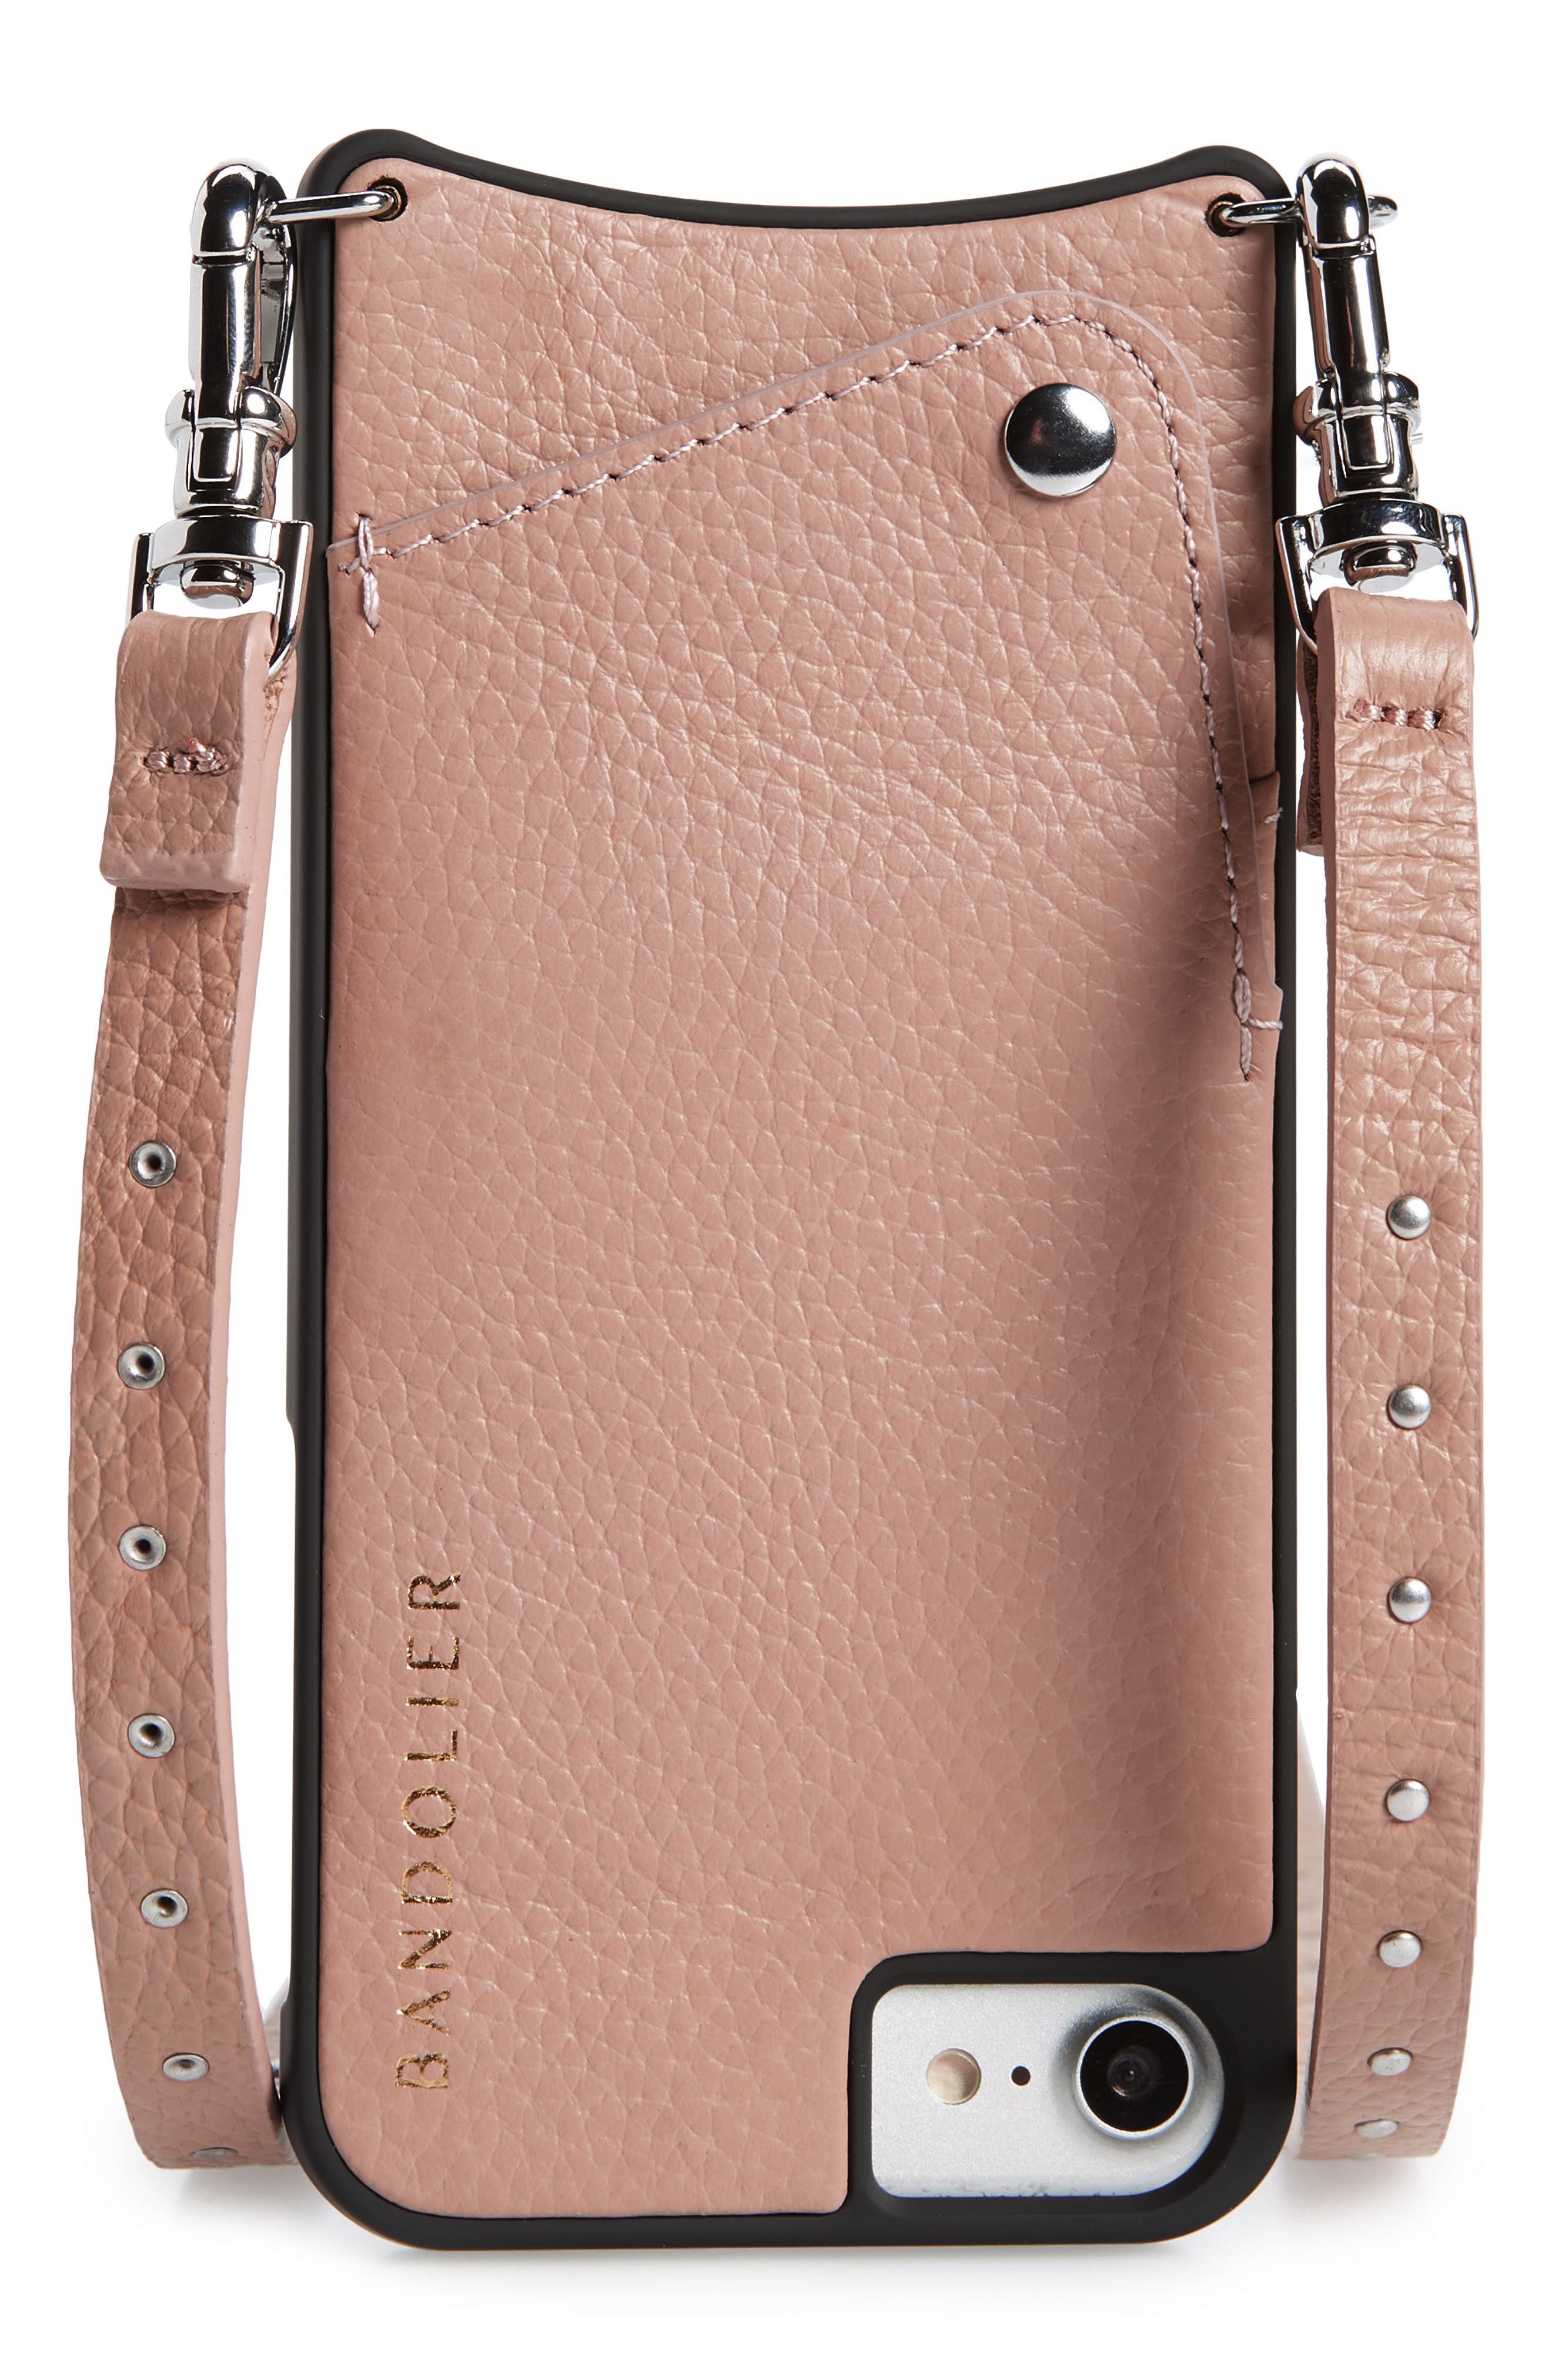 iphone 8 plus cell phone casesCool Iphone 8 Plus Cases Iphone 8 Plus Case Apple Custom Iphone 8 Plus Cases Wristlet Iphone Case Branded Iphone Cases Louis Vuitton #8